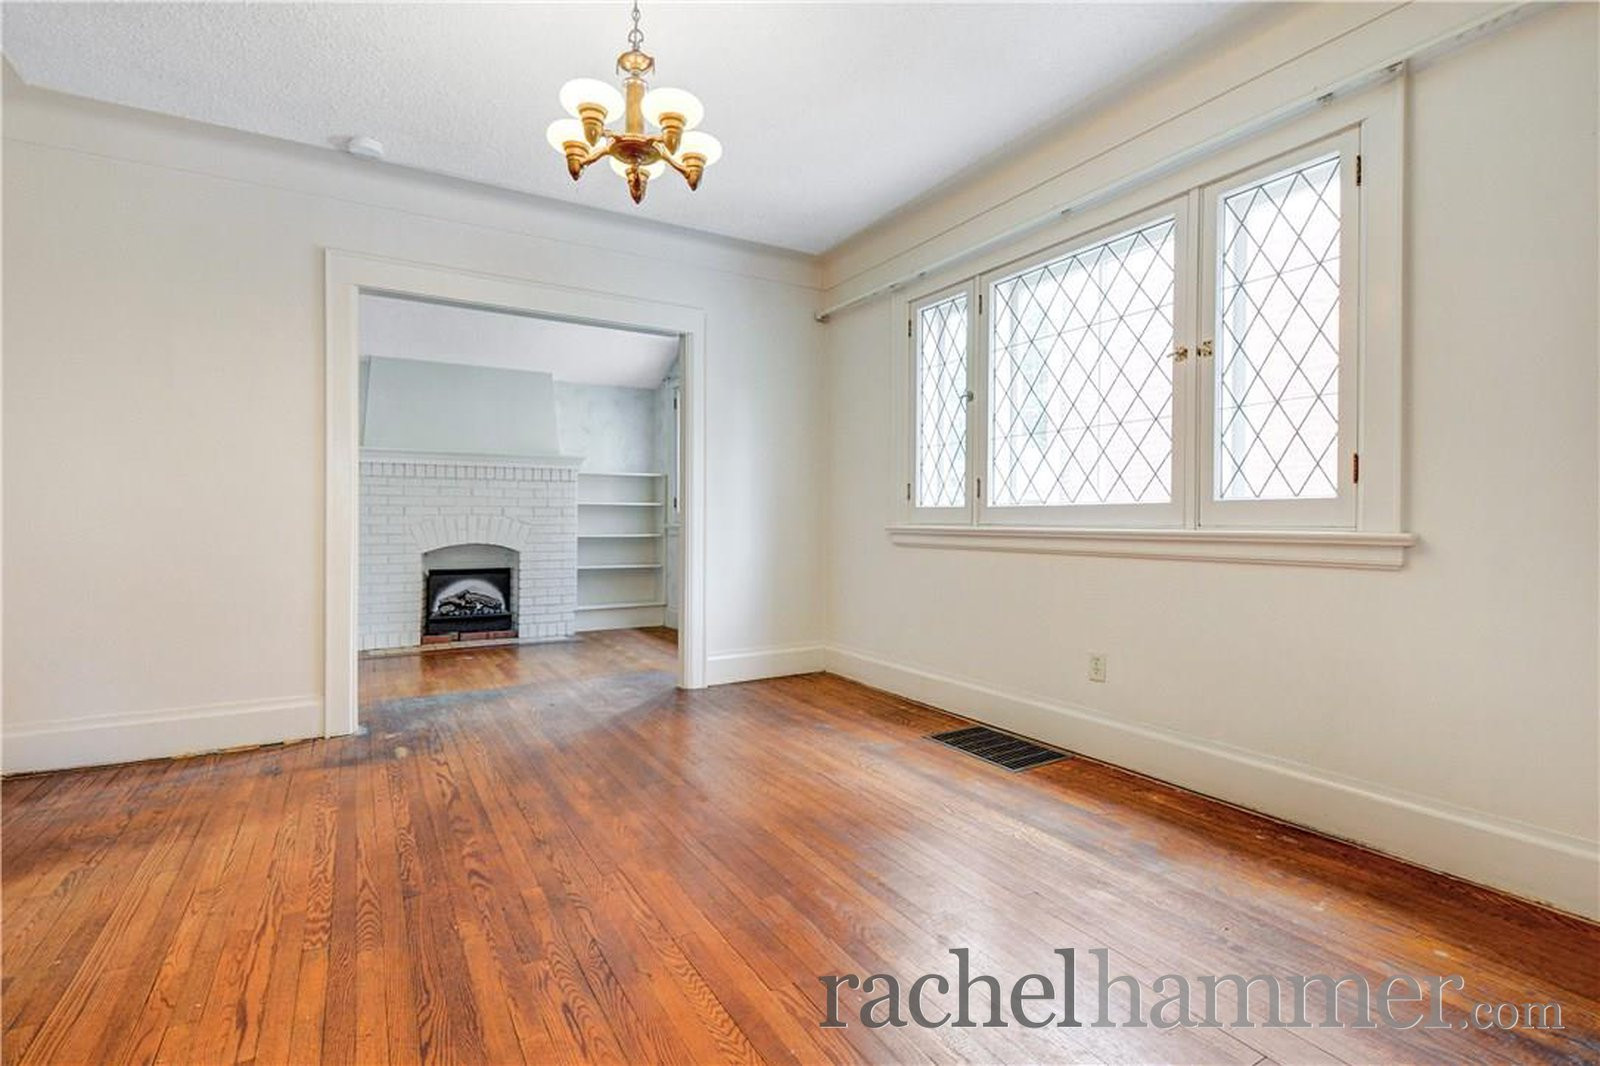 canada hardwood flooring ottawa of rachelhammer com real estate team for ottawa on canada 98 inside 19879745 98 renfrew avenue the glebe ottawa ontario